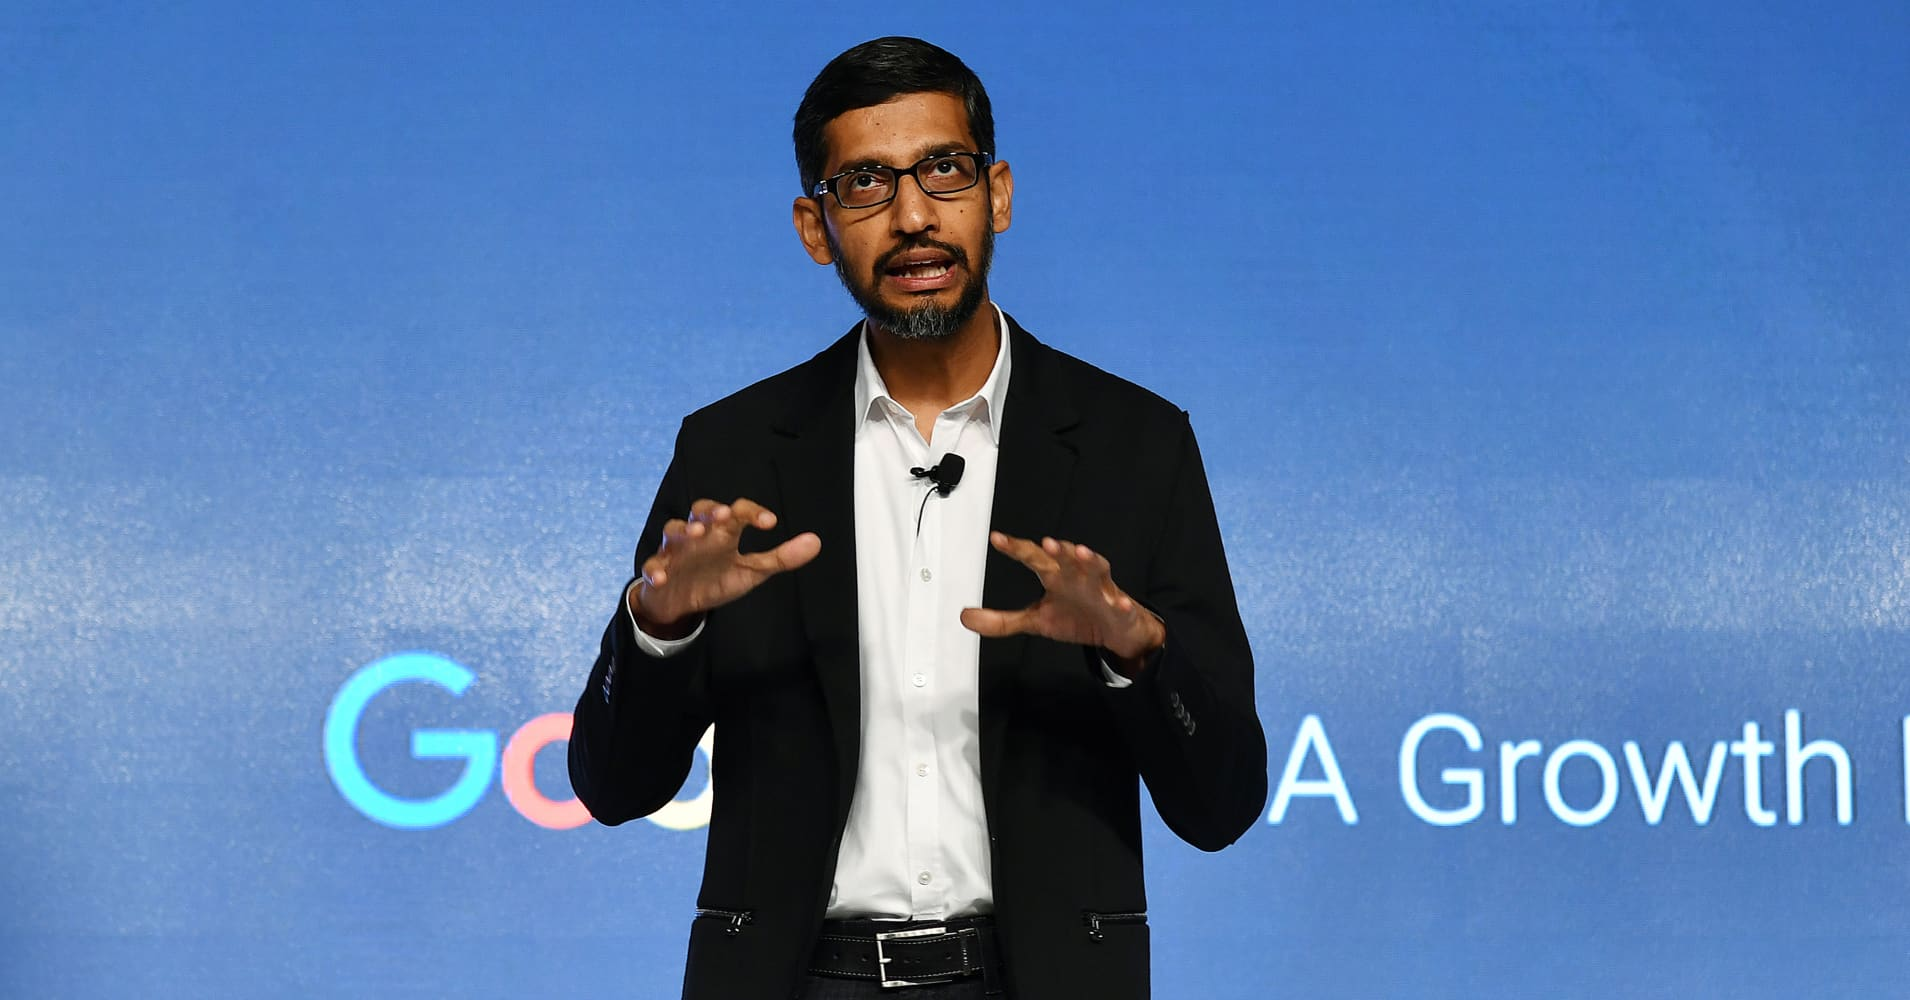 Google CEO Sundar Pichai testifies before Congress on bias, privacy